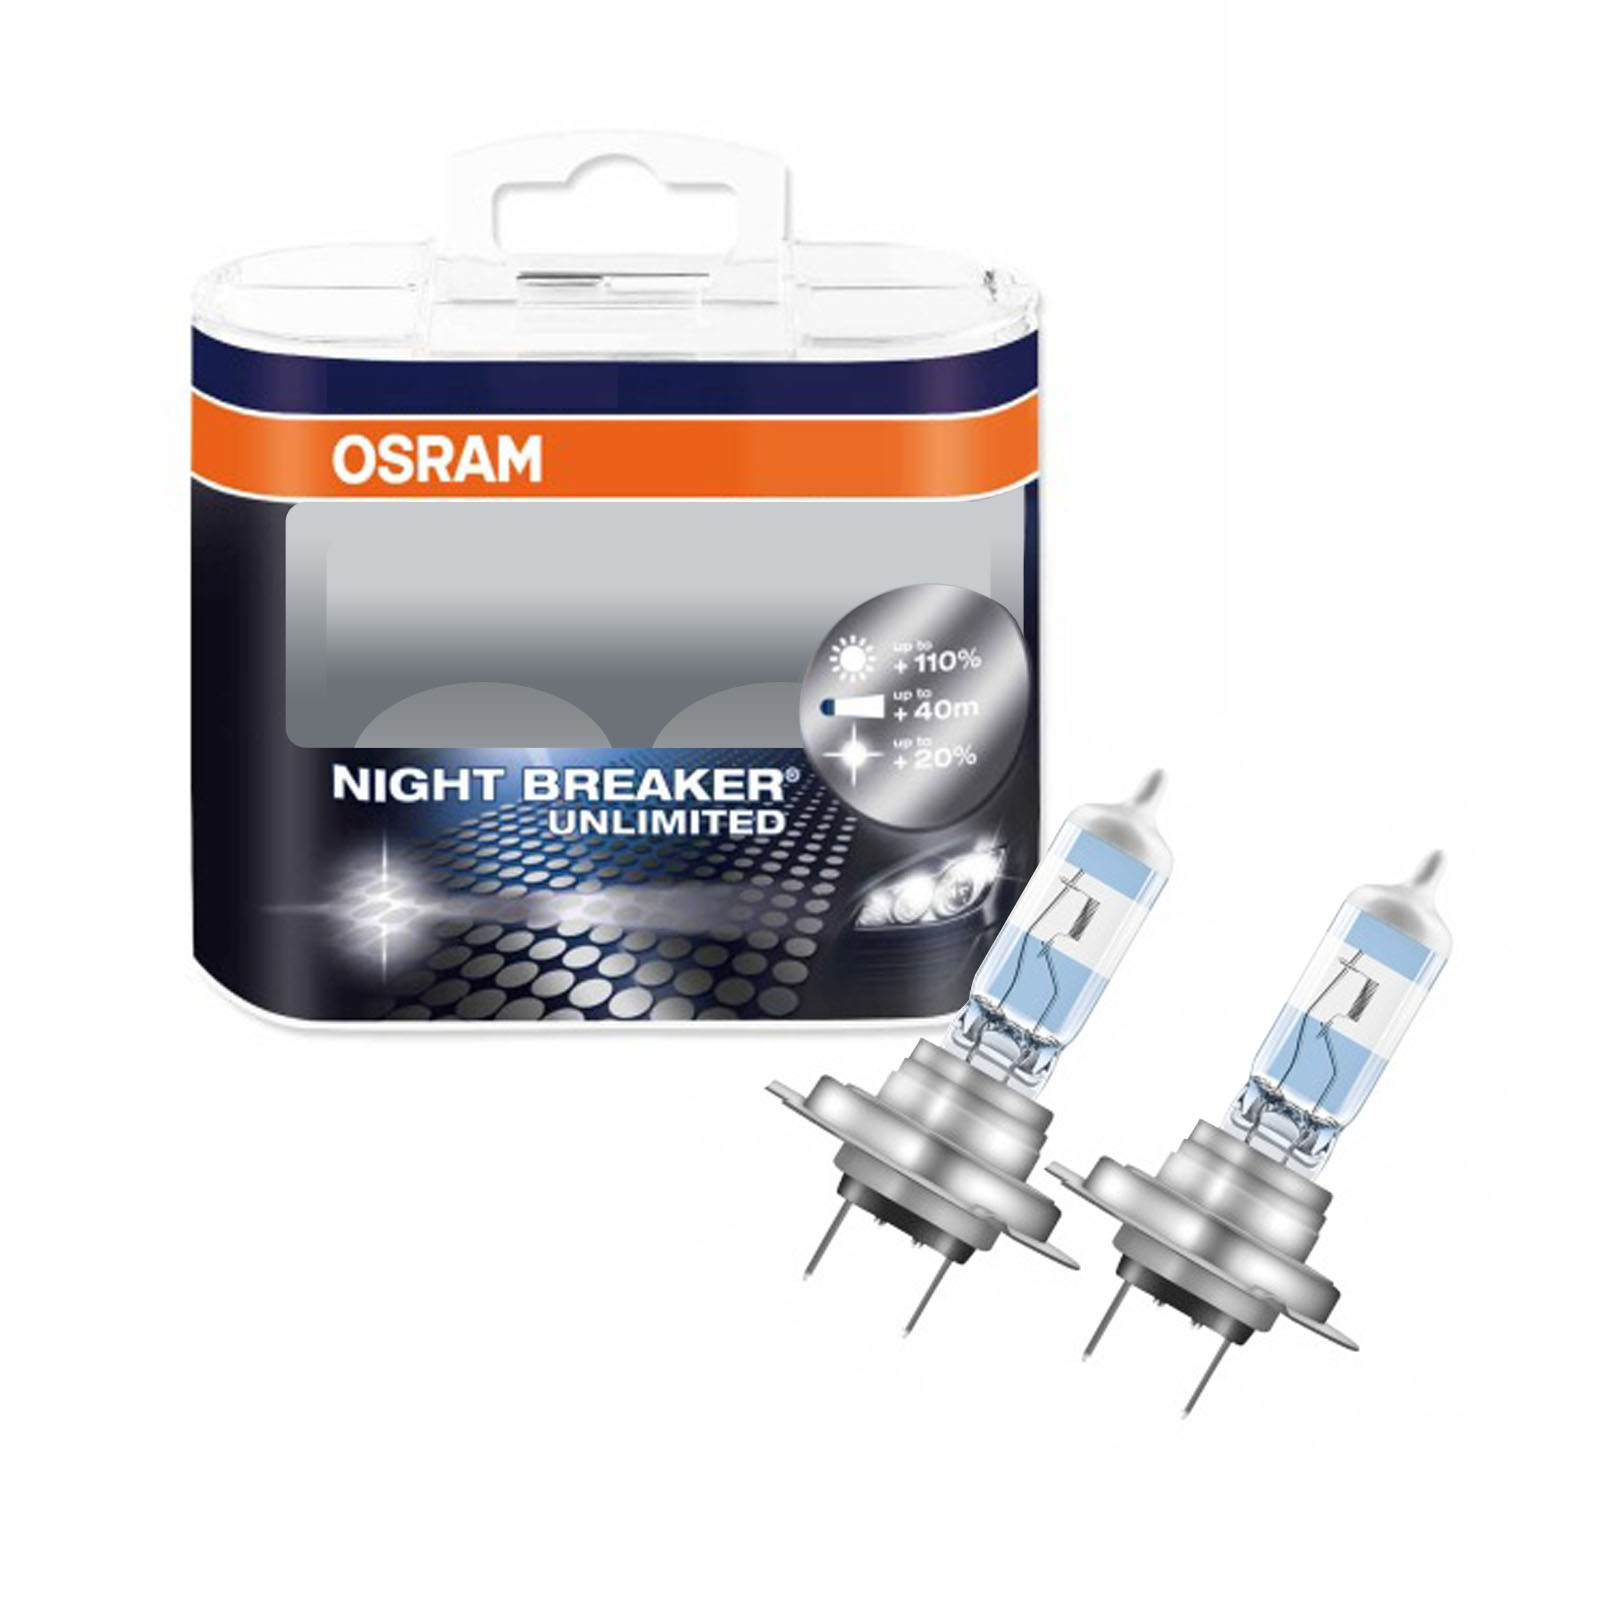 h7 osram night breaker unlimited high main full beam. Black Bedroom Furniture Sets. Home Design Ideas